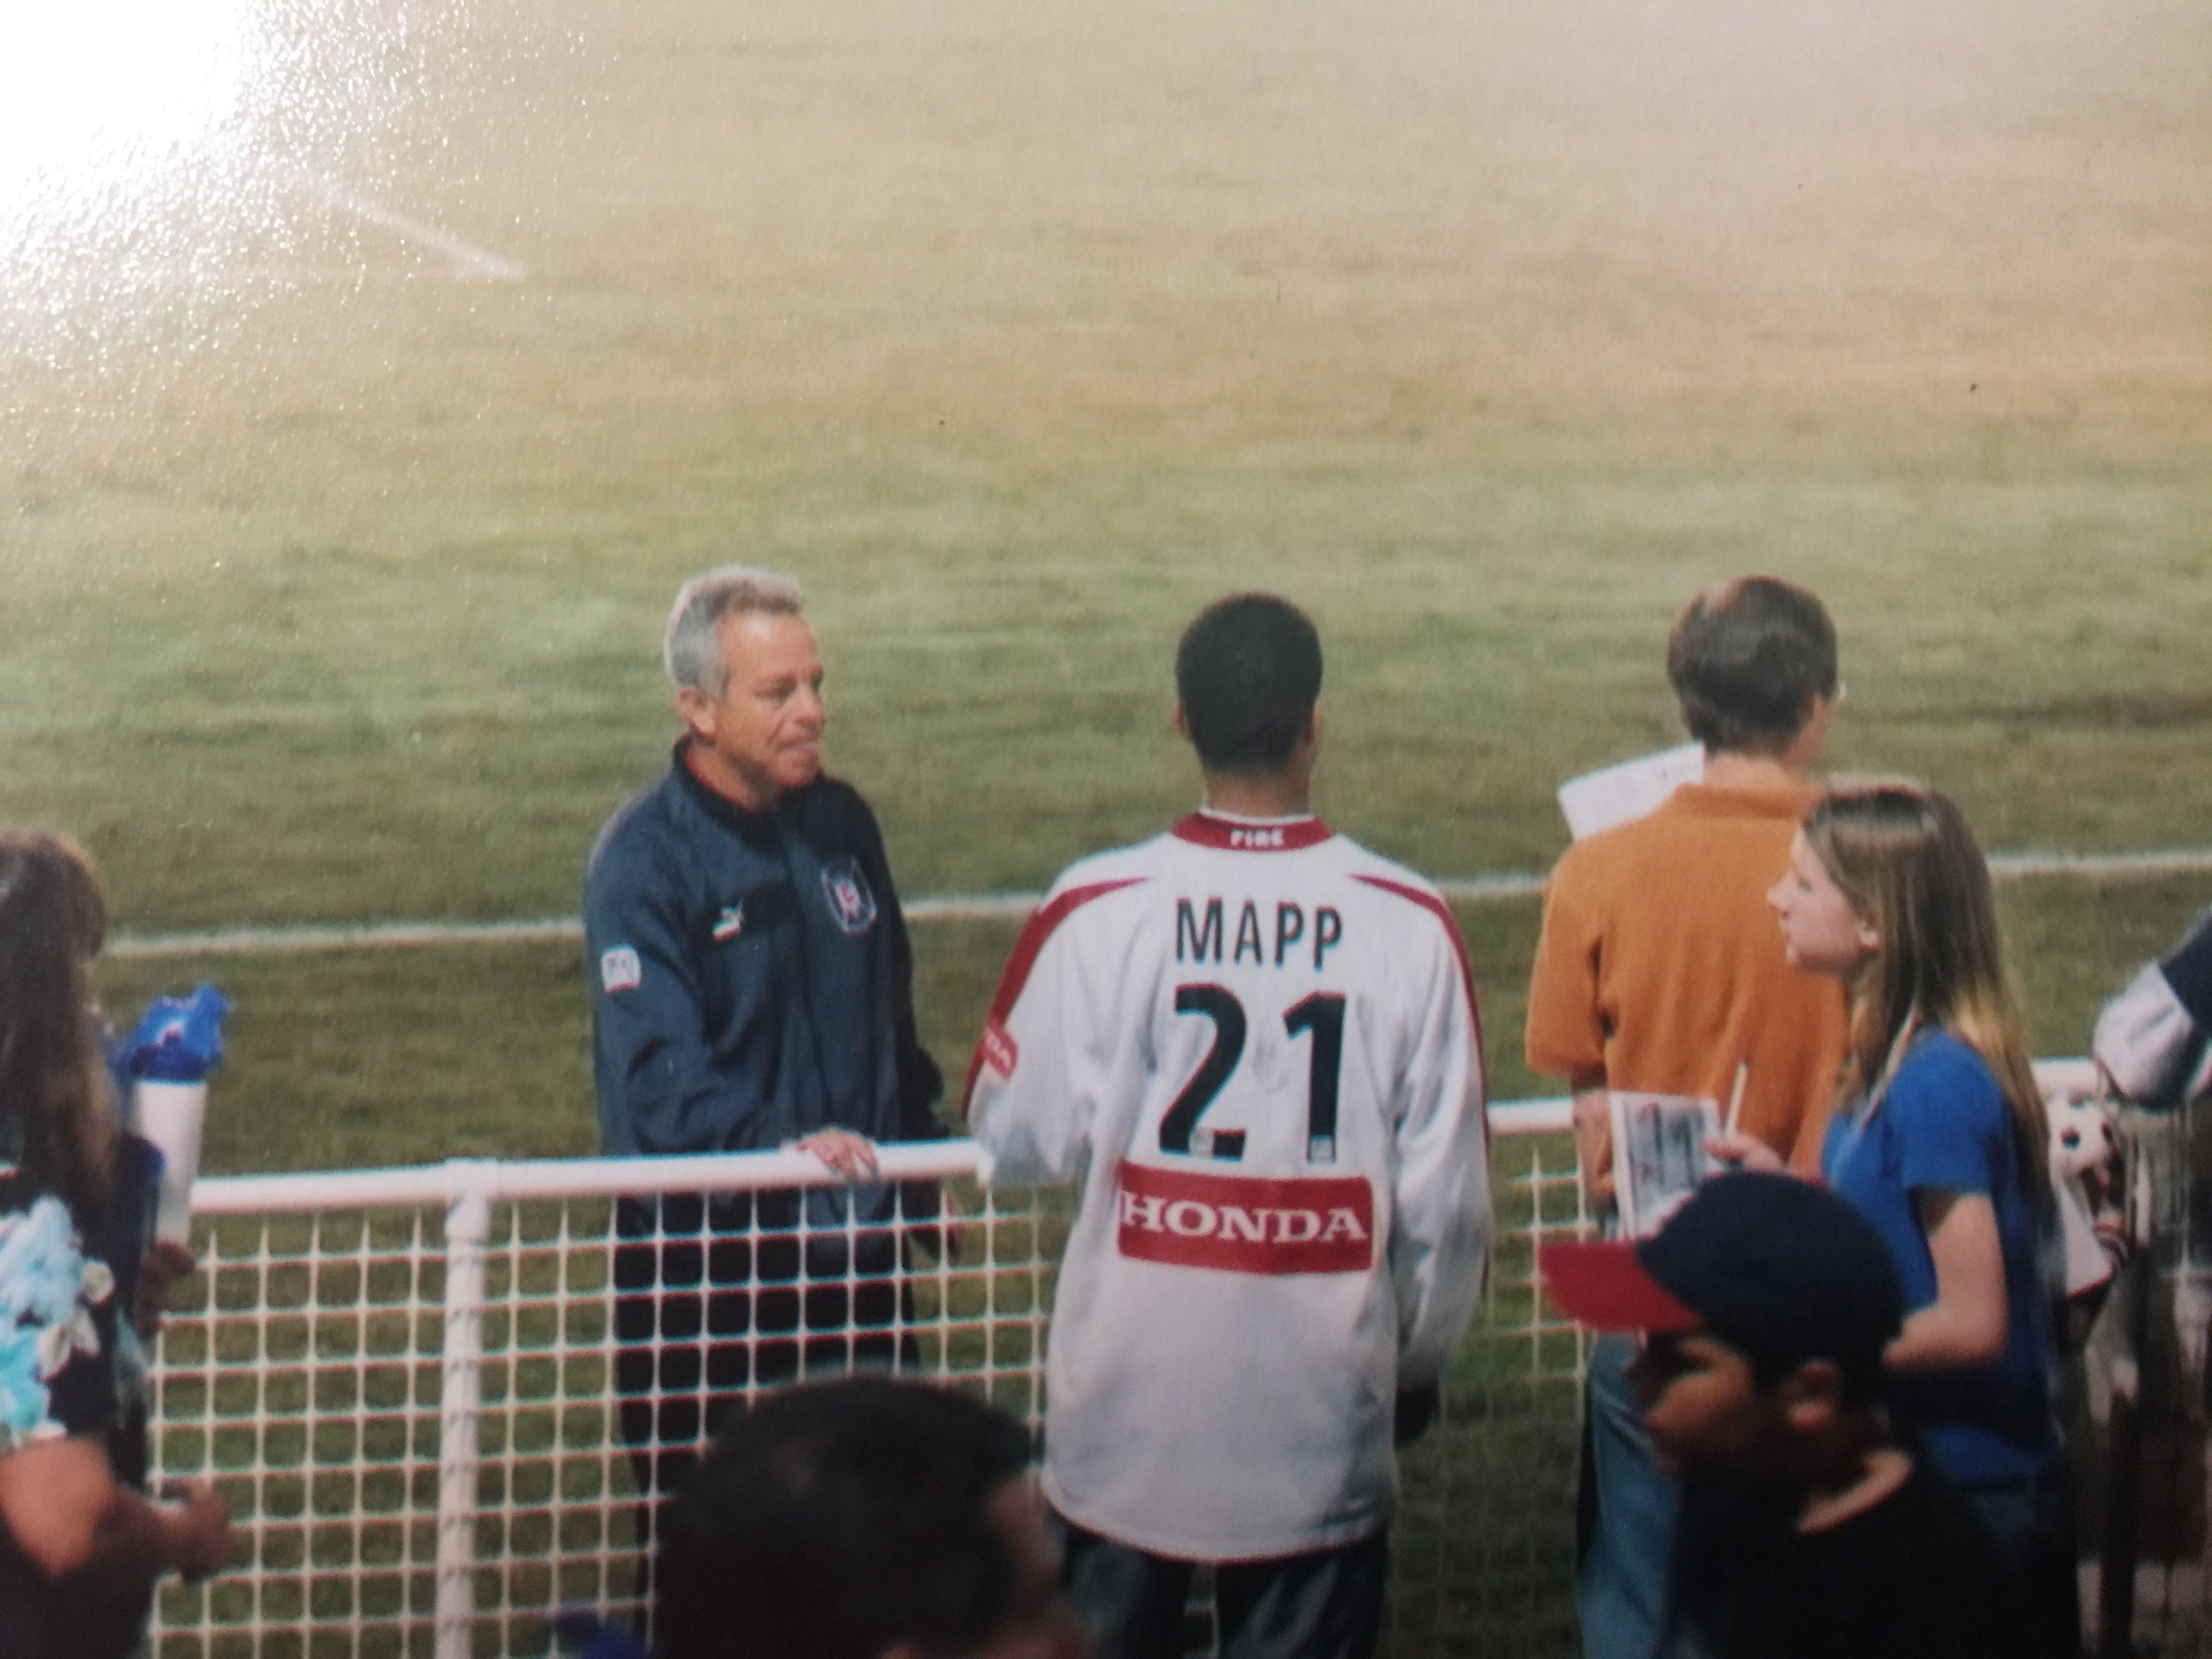 Here's me in that jersey I won talking with Coach Dave Sarachan (current USMNT coach). Dave was coaching the Fire then, and he remembered me from stalking his team practices during school hours.